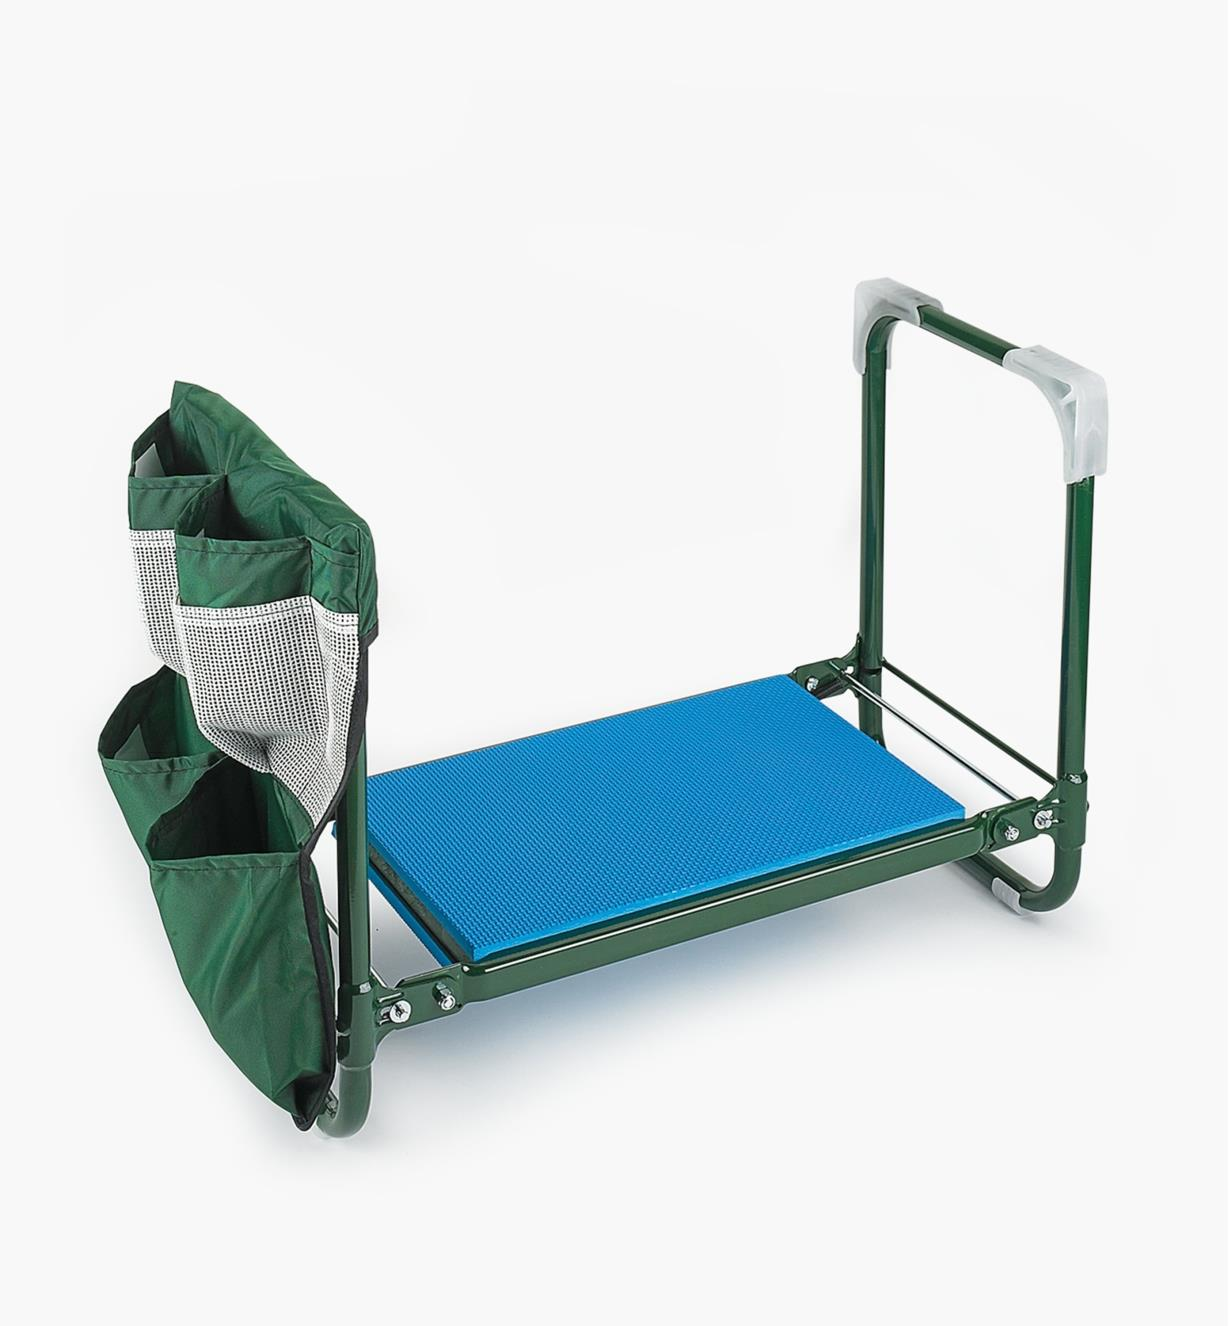 EB416 - Kneeler/Tool Holder Set